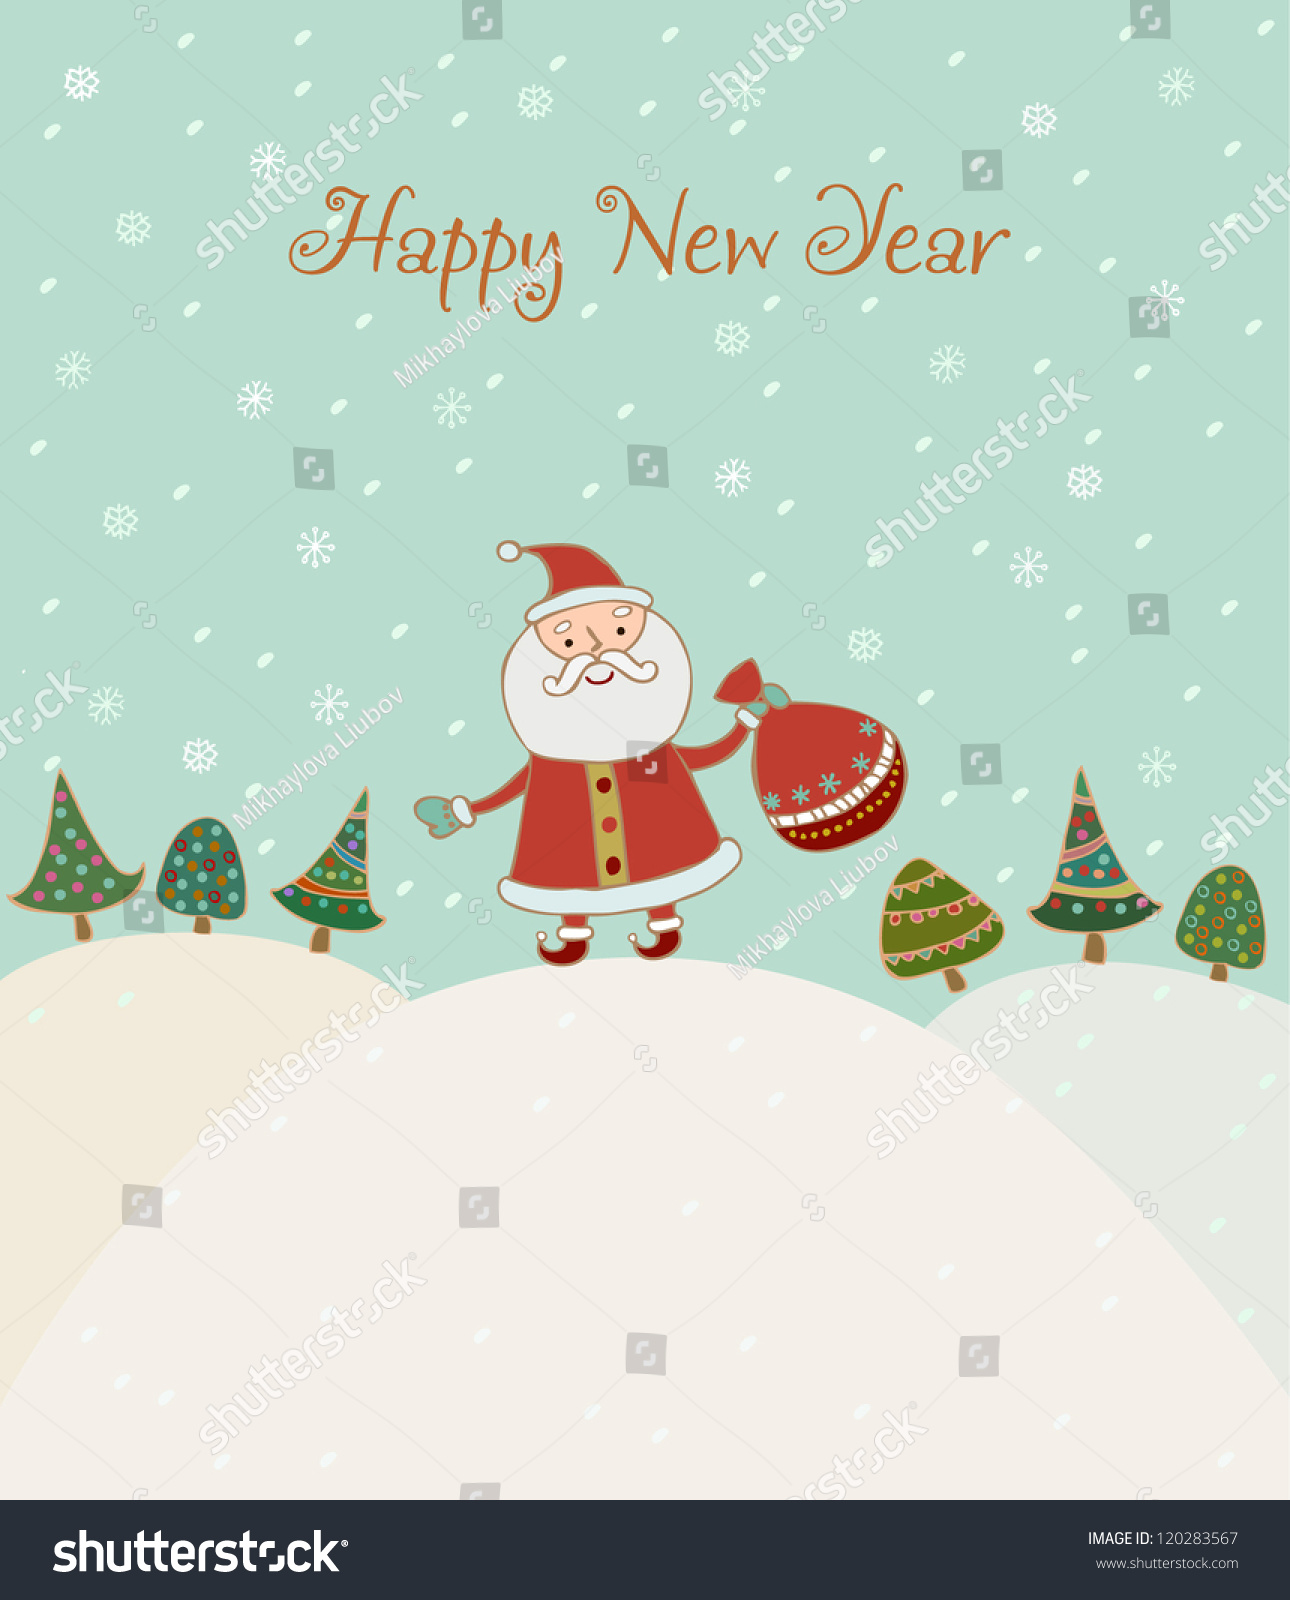 Illustrated Hand Drawn New Year Greeting Card With Sample Text